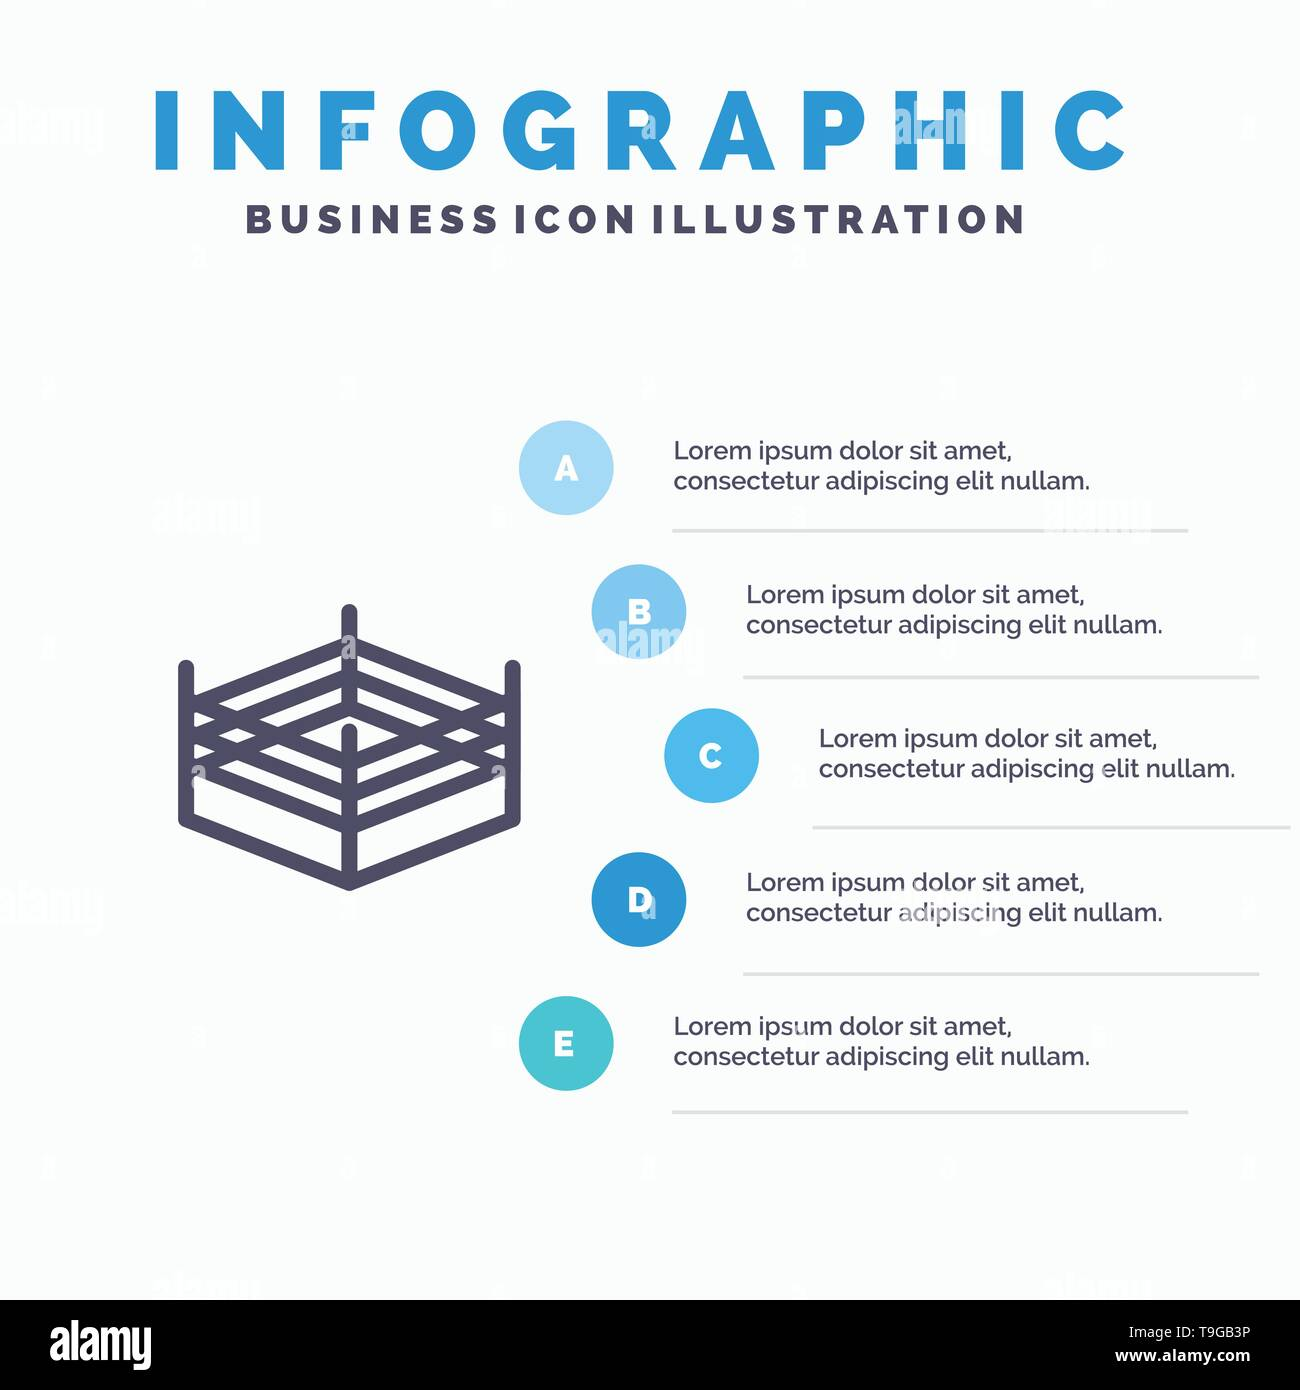 Boxing, Ring, Wrestling Line icon with 5 steps presentation infographics Background - Stock Image